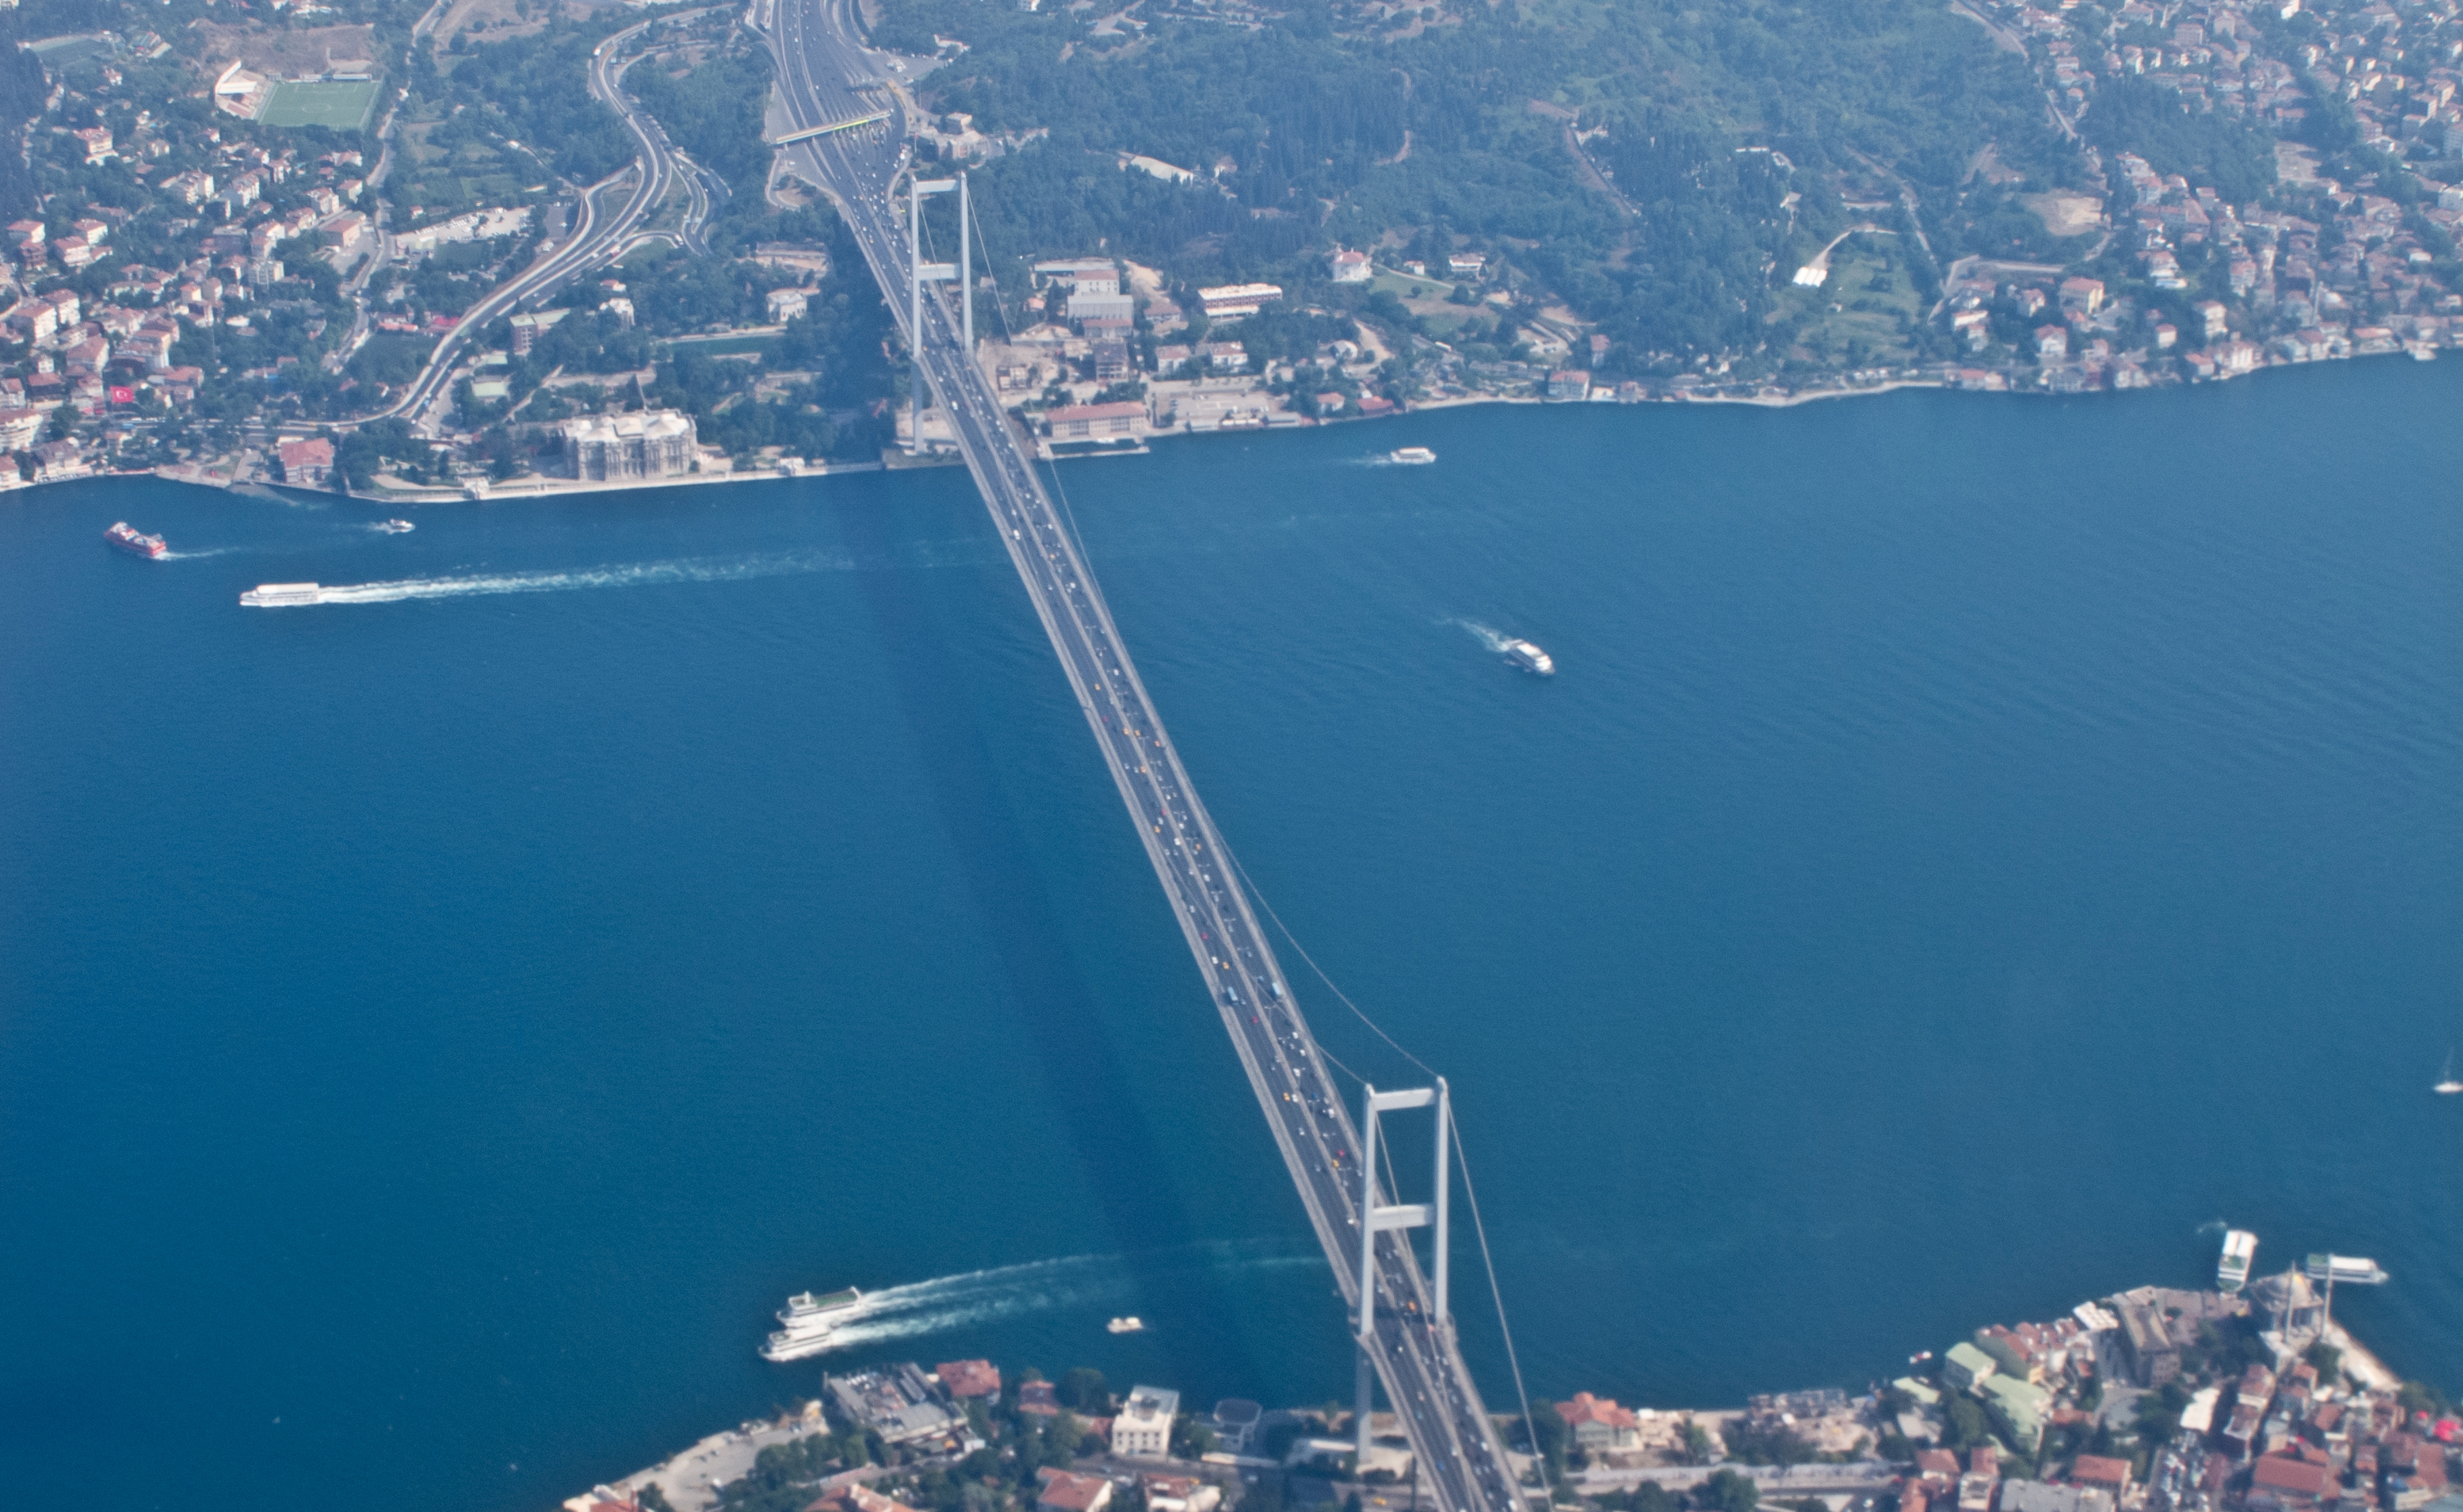 Aerial view of Bosphorus Bridge, Istanbul, Turkey, 2011. Photo: Carlos Delgado. License: CC-BY-SA-3.0